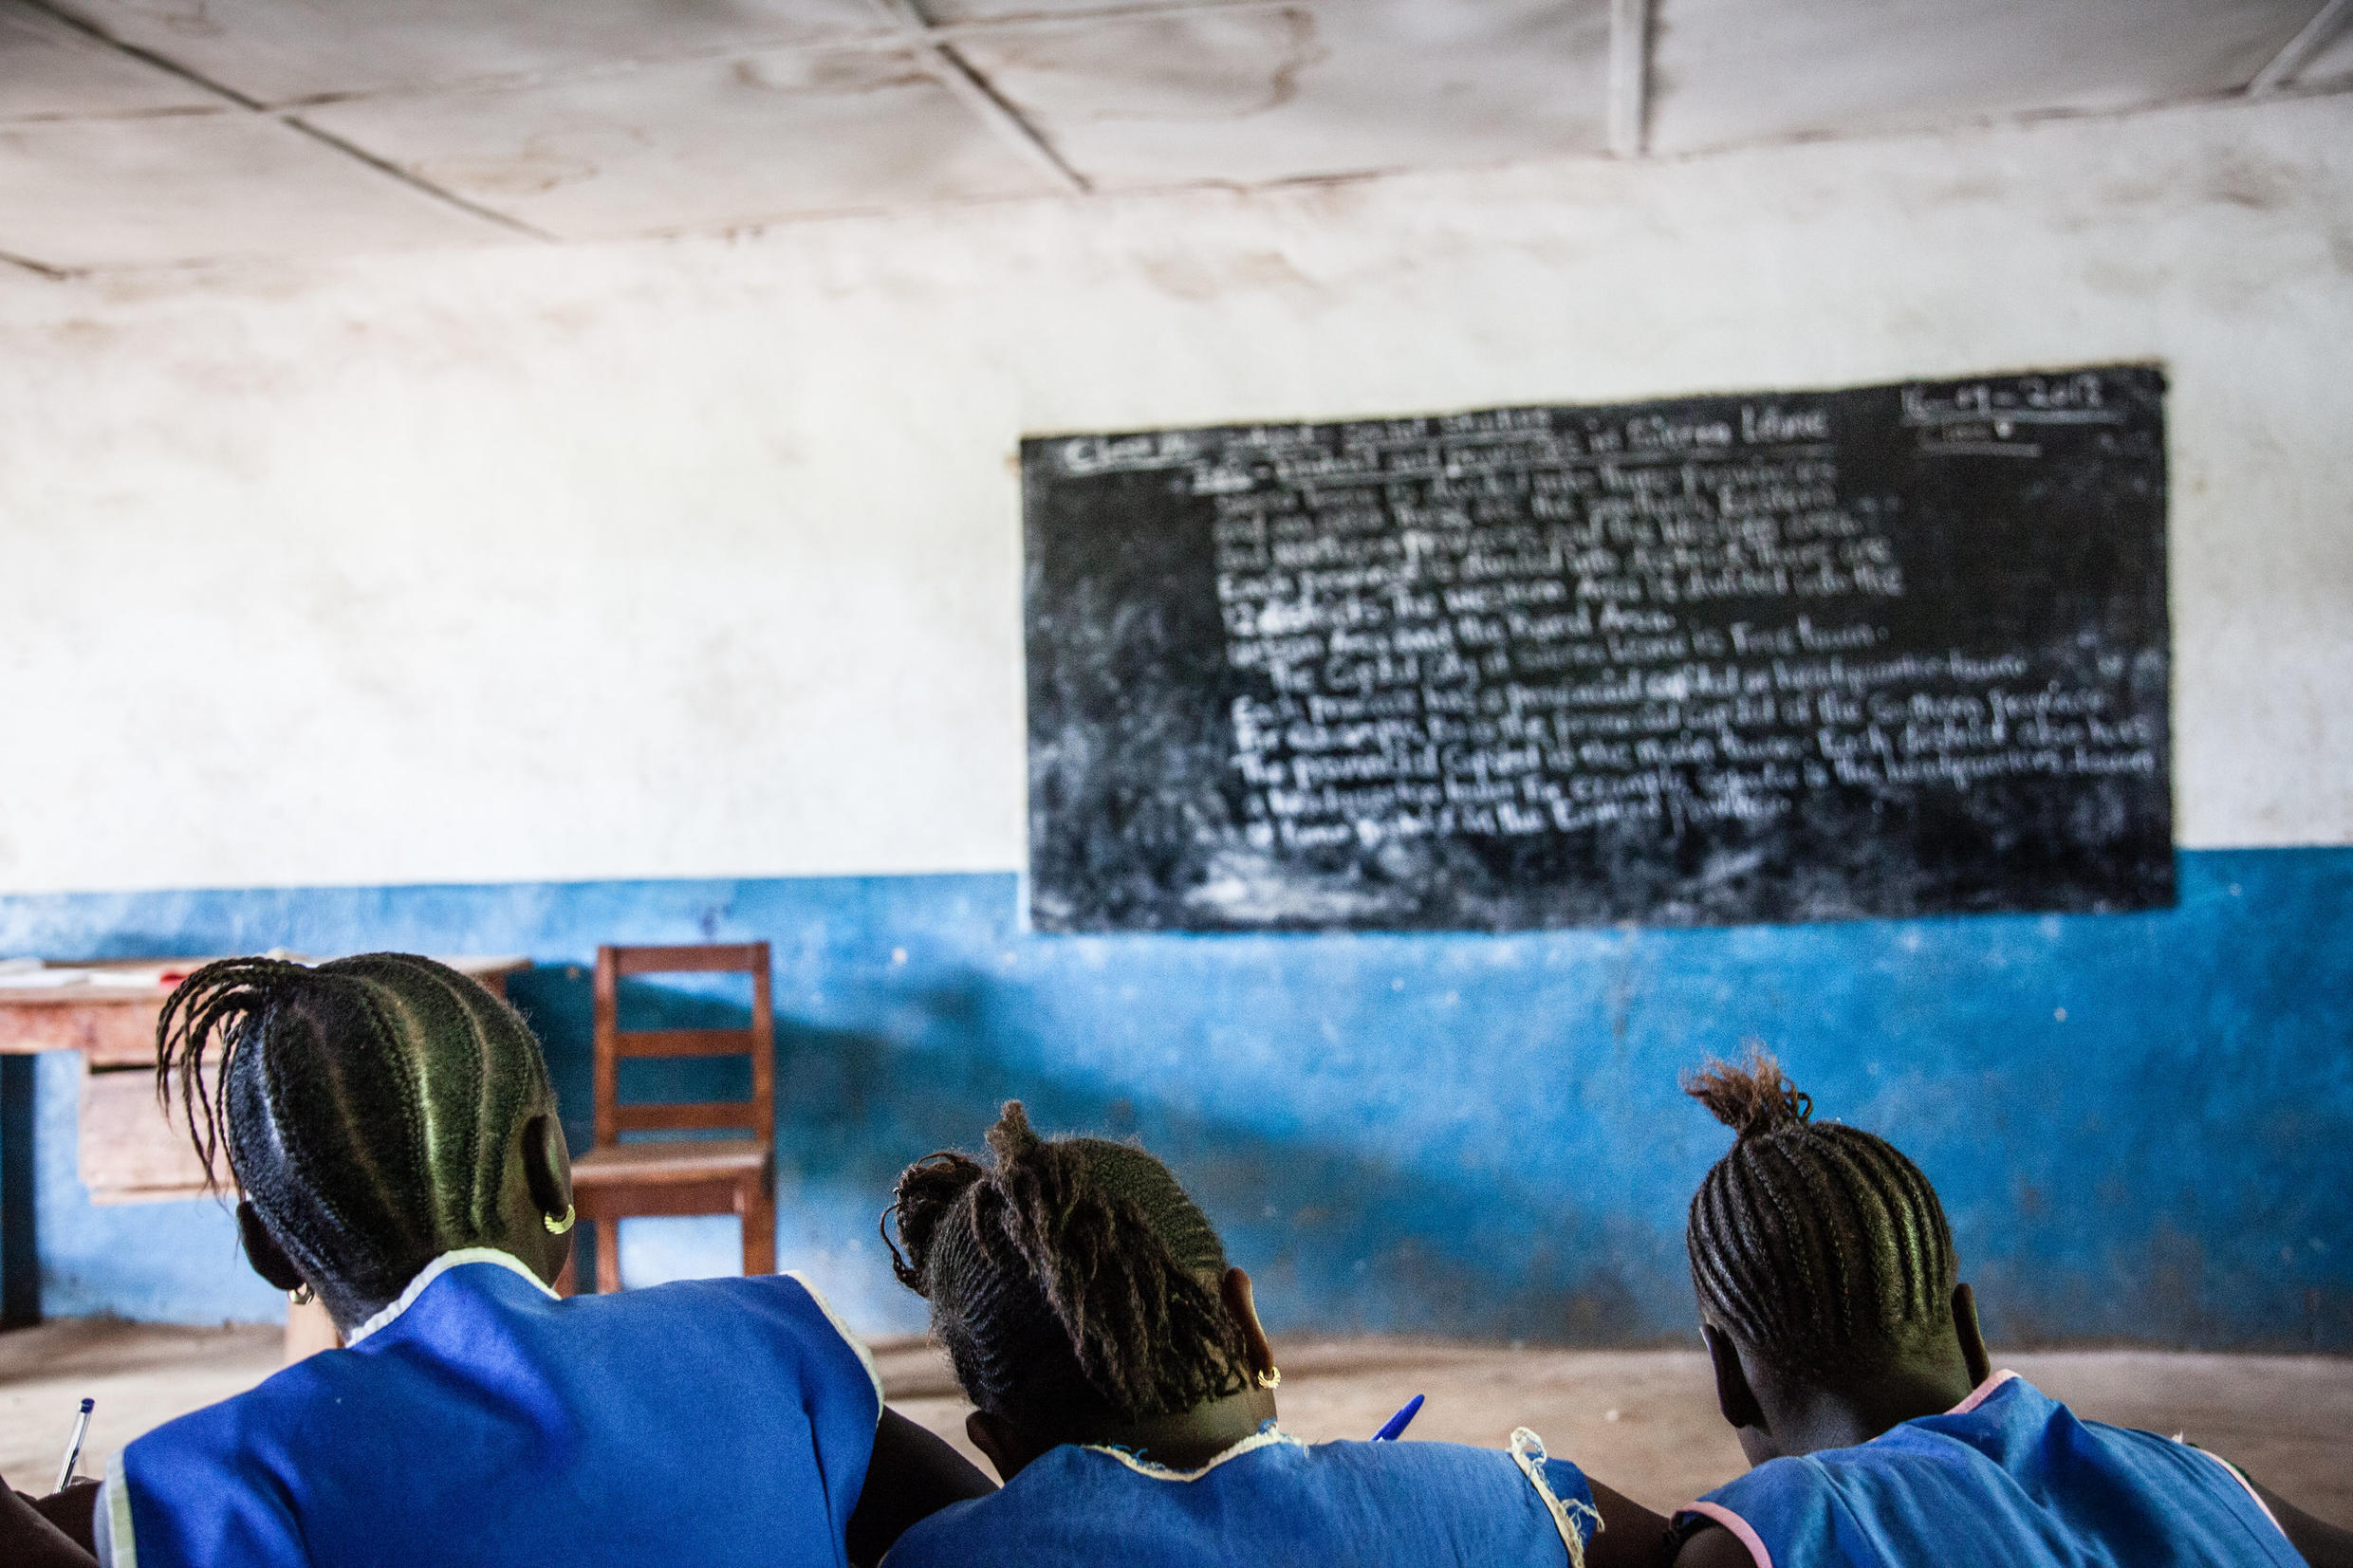 Visibly pregnant girls in primary and secondary schools will not be able to take their exams